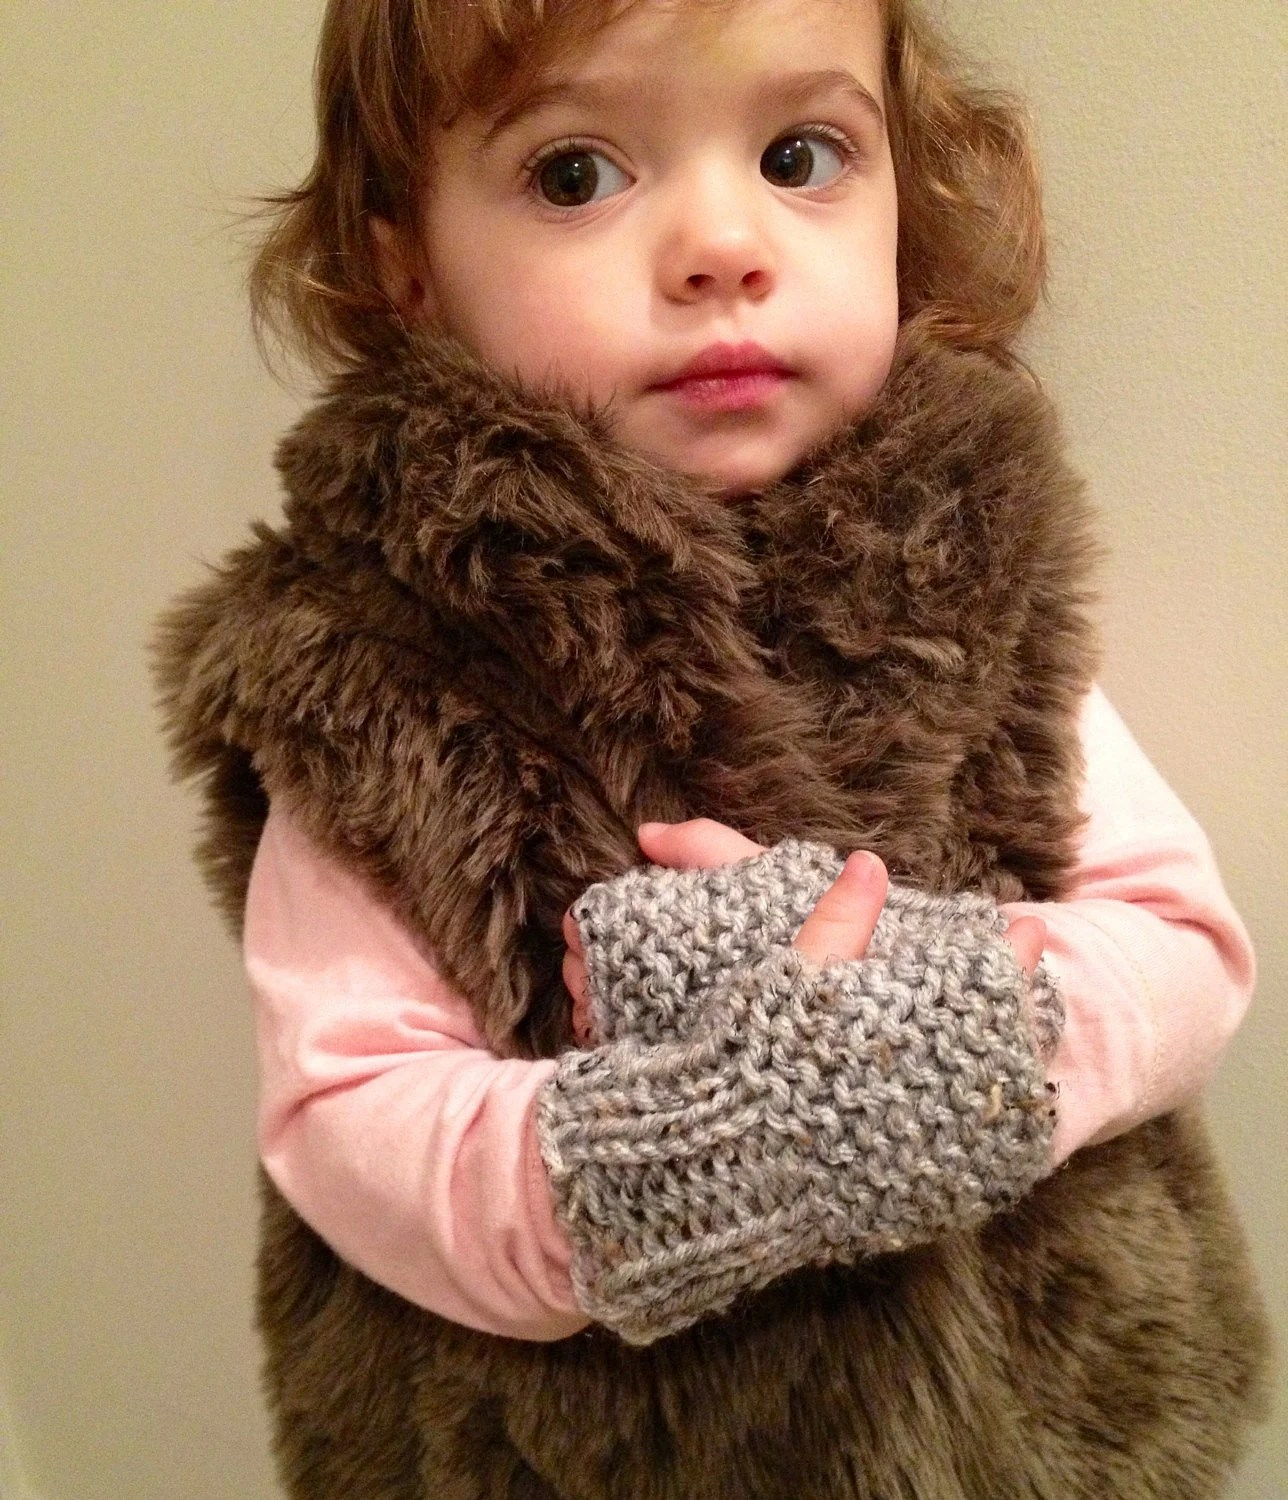 Had knit Toddler fingerless mittens - hand warmers - toddler mittens - kid gloves - gray - ages 18-24 months